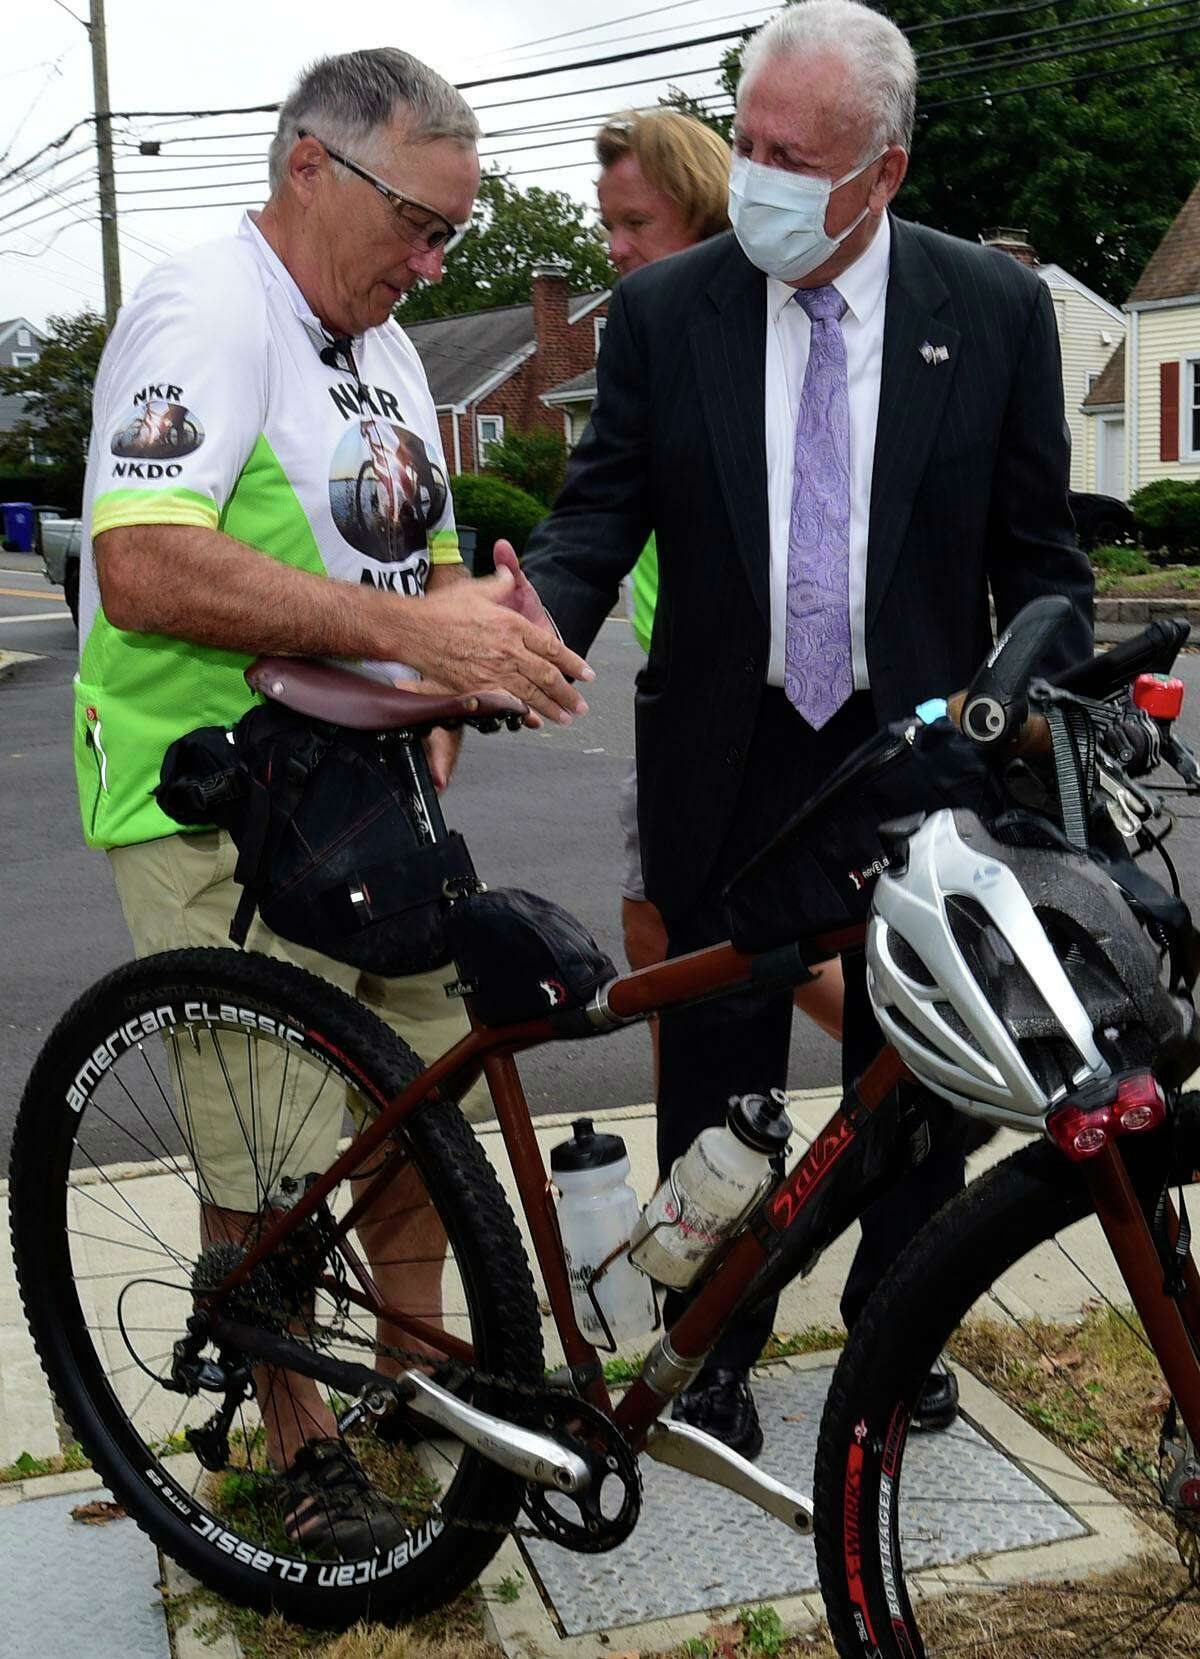 """Kidney donor Mark Scotch meets with Norwalk Mayor Harry Rilling September 19, 2021, along Winfield Street in Norwalk, Conn. Scotch, age 65, is once again hit """"The Organ Trail,"""" cycling his way 1,600 miles to promote kidney disease awareness, living donor need, and post-donation functionality with a marathon bike ride from Martha's Vineyard, Massachusetts to his home in Plover, Wisconsin."""